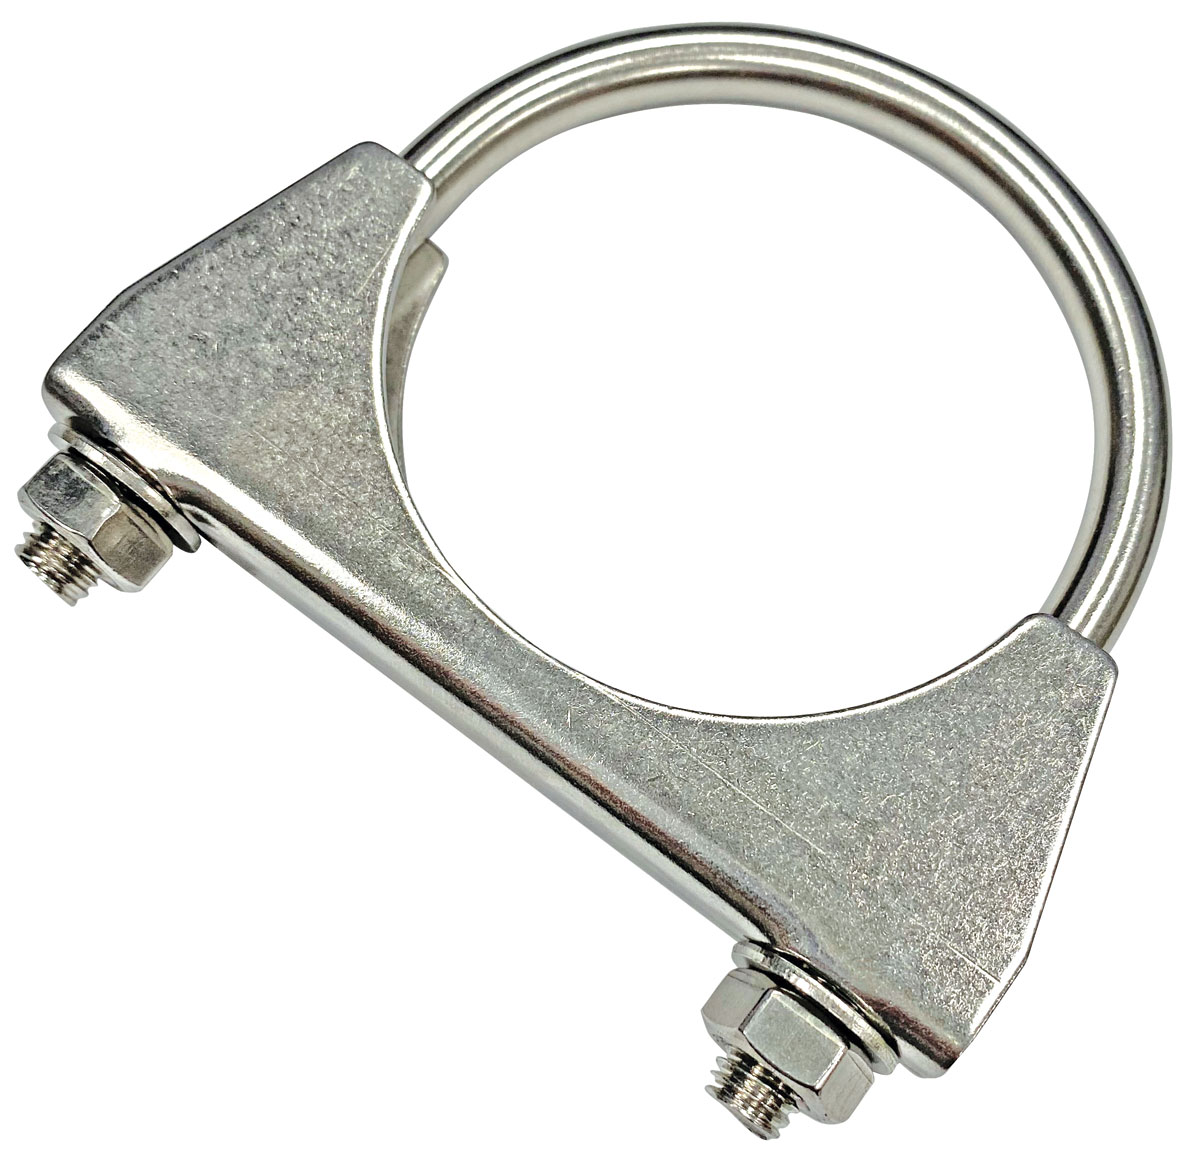 Photo of Exhaust Clamp, Stainless Steel 1-7/8""